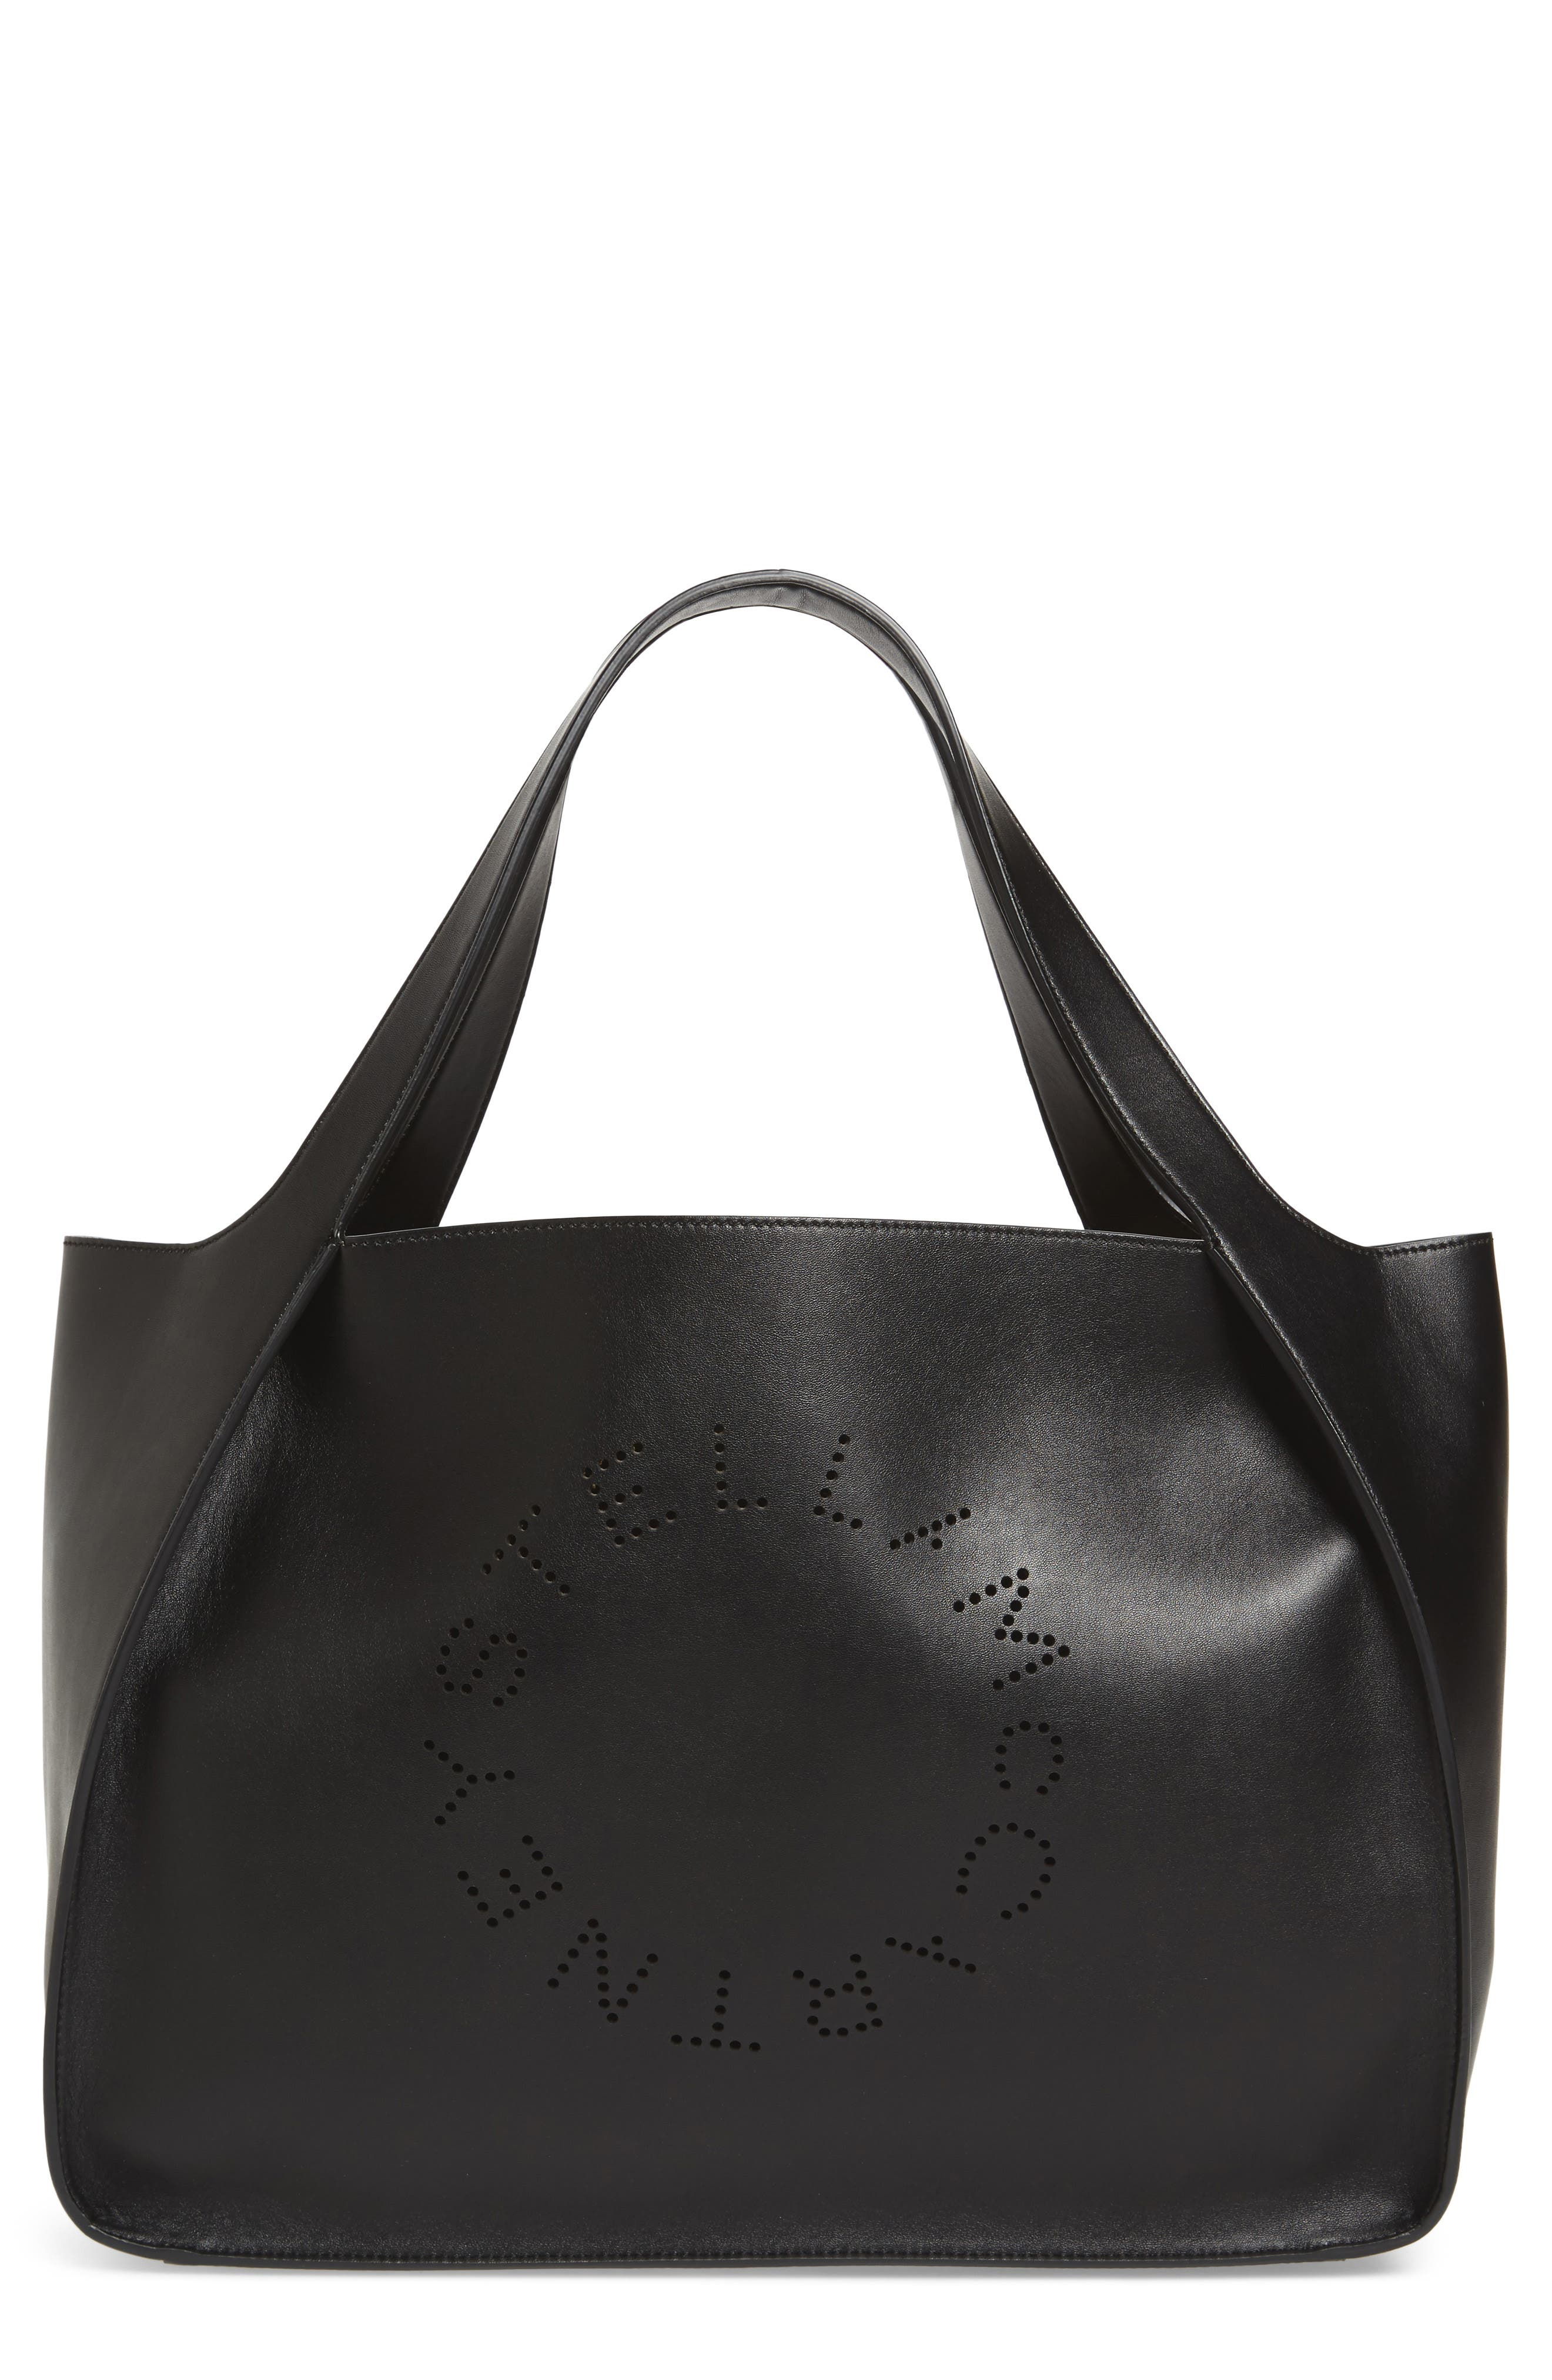 Stella Mccartney Medium Perforated Logo Faux Leather Tote - Black